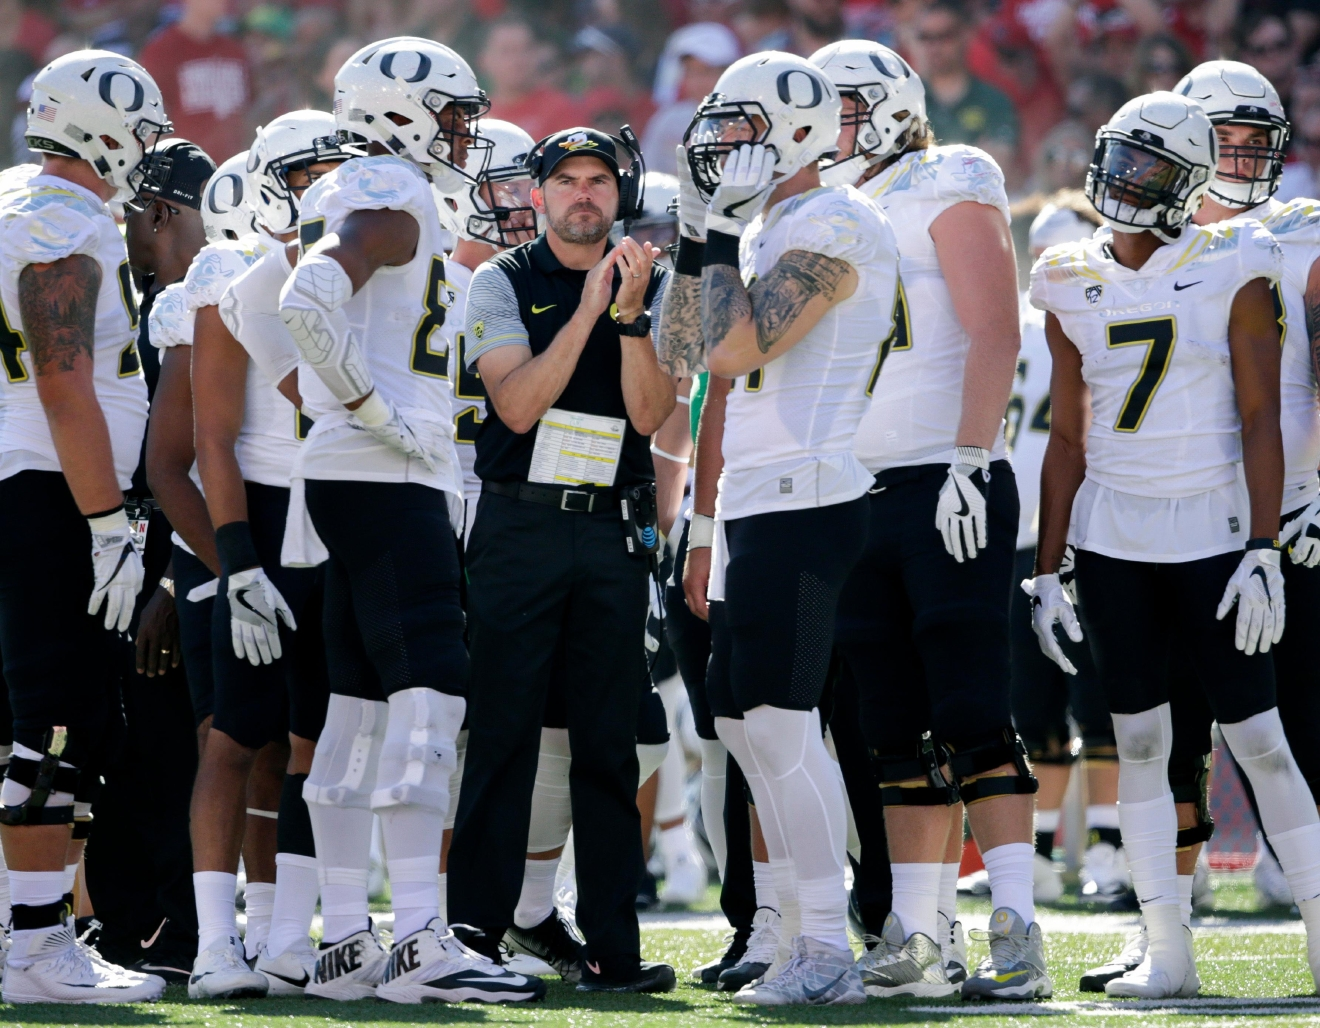 Oregon head coach Mark Helfrich stands amongst his players during a time out during the first half of an NCAA college football game against Nebraska in Lincoln, Neb., Saturday, Sept. 17, 2016. (AP Photo/Nati Harnik)